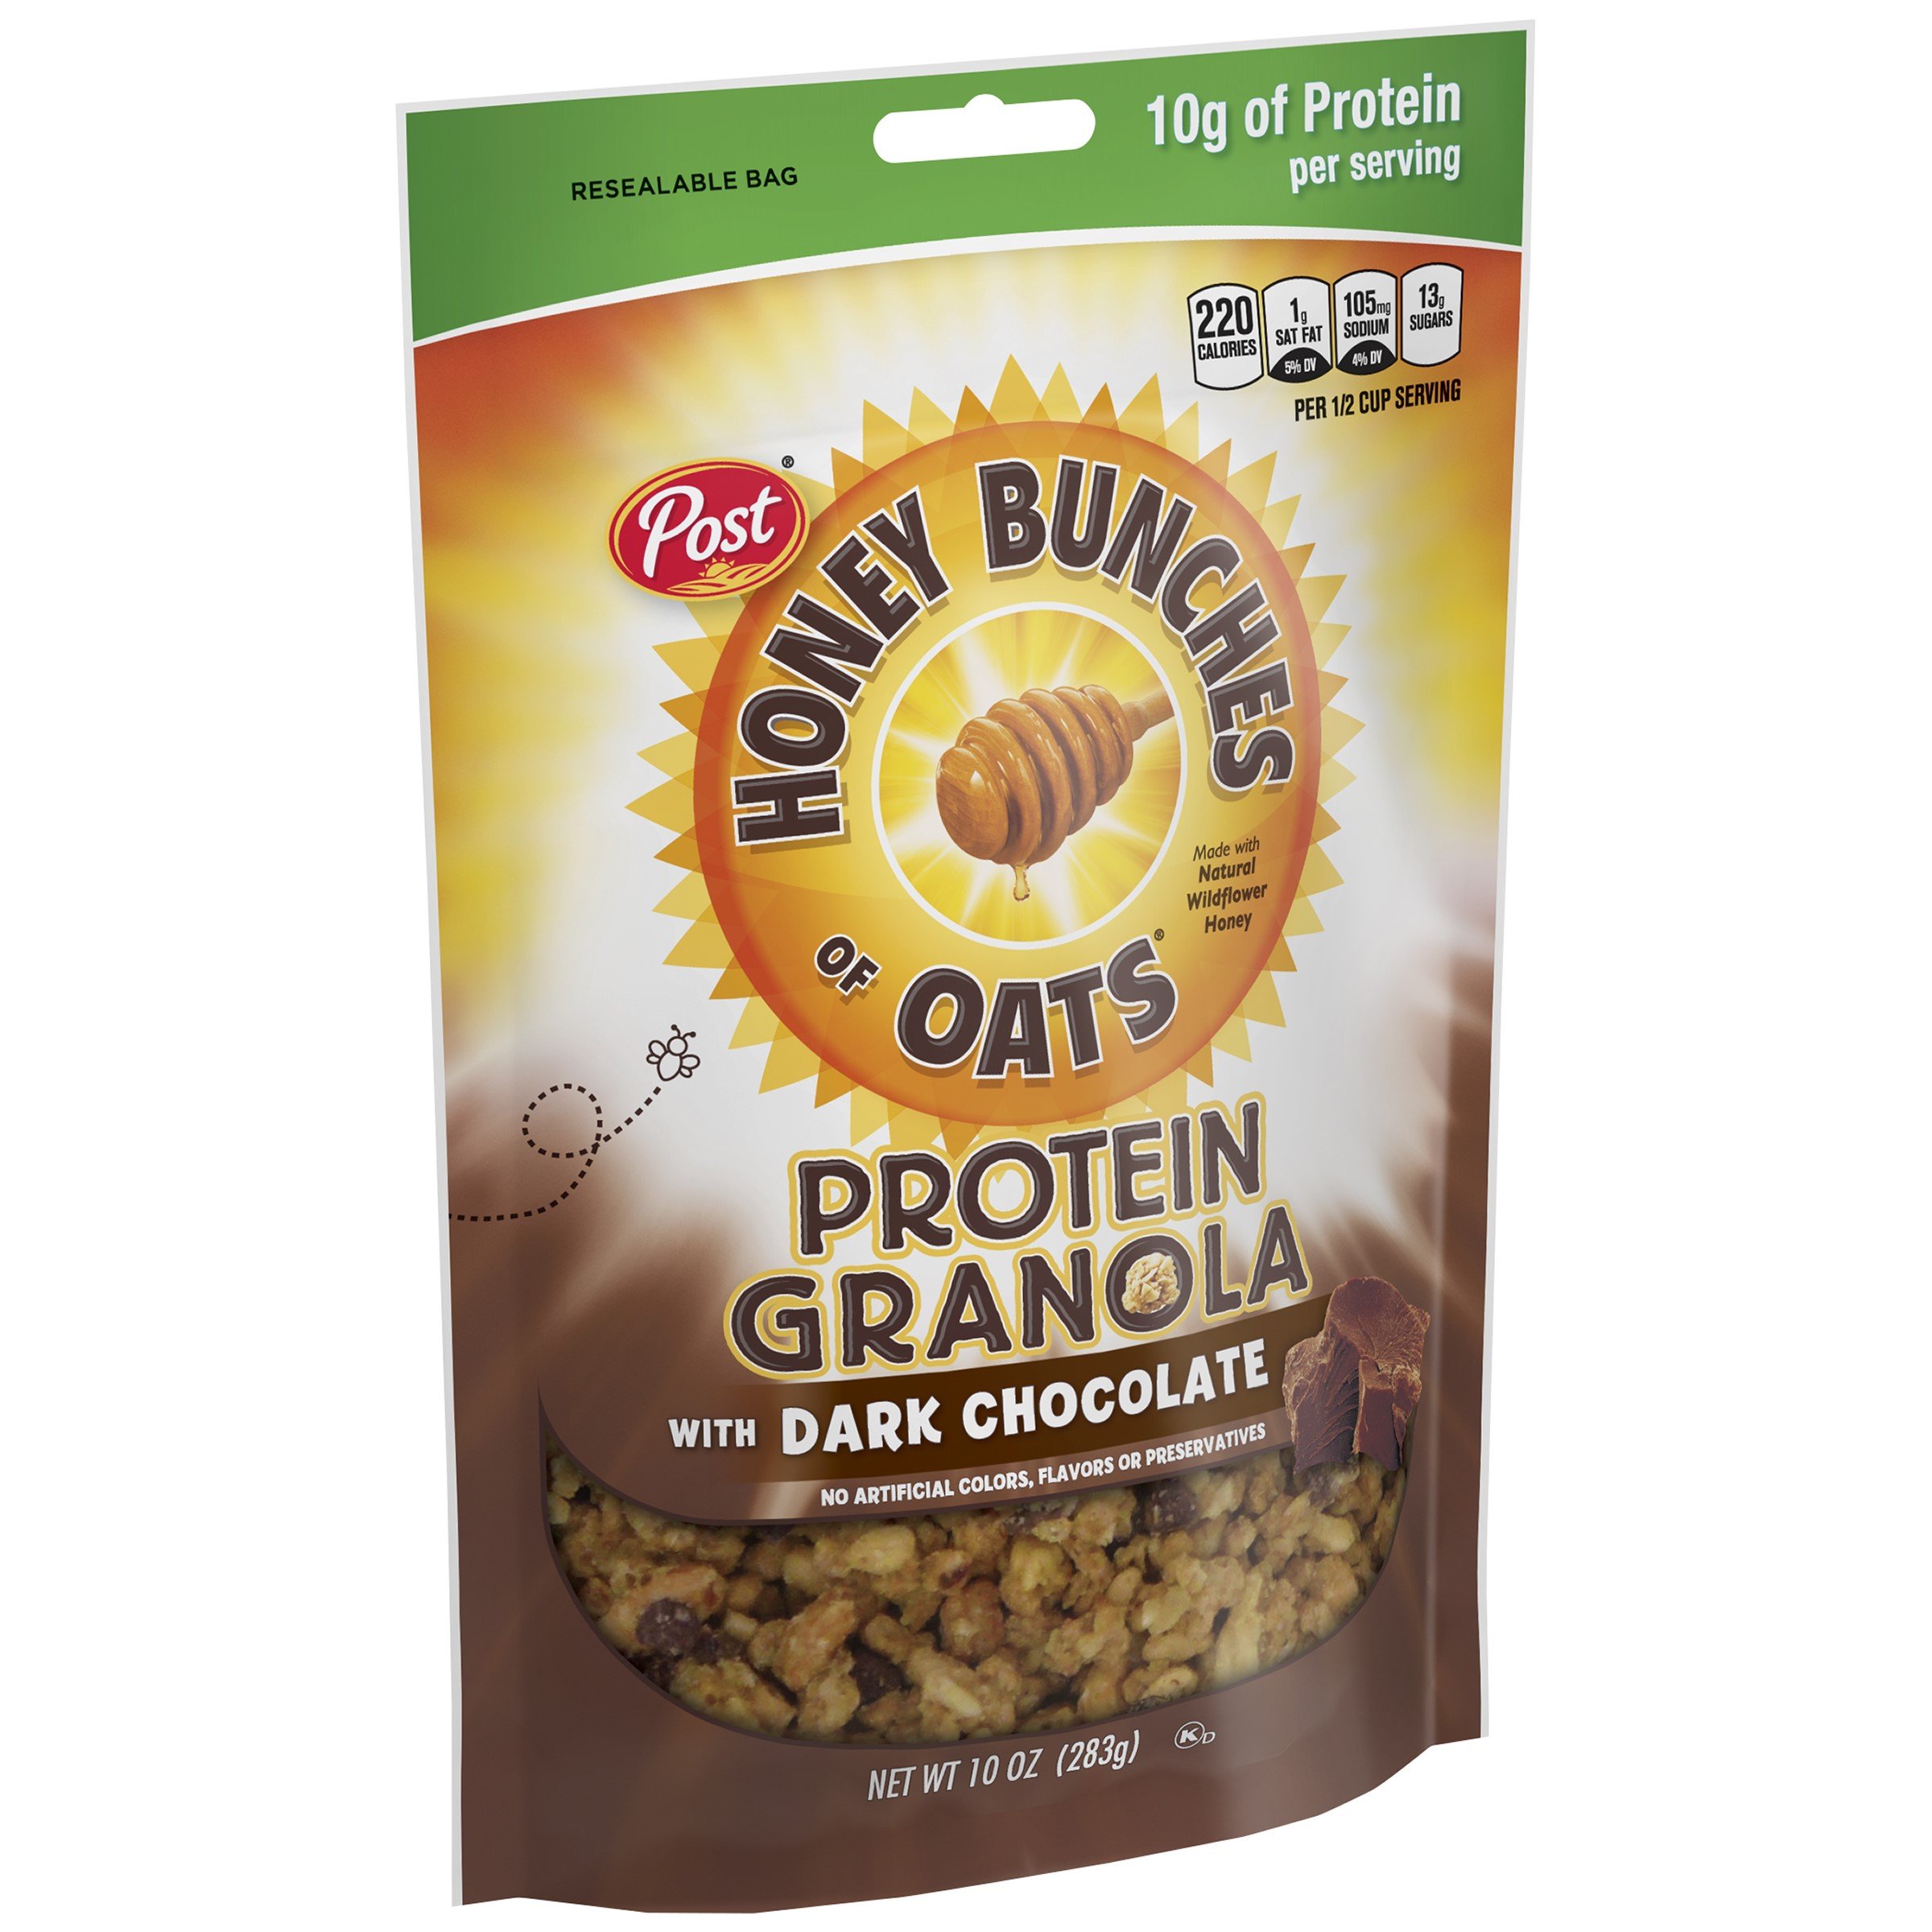 Post Honey Bunches of Oats Protein Granola with Dark Chocolate, 10 Ounce